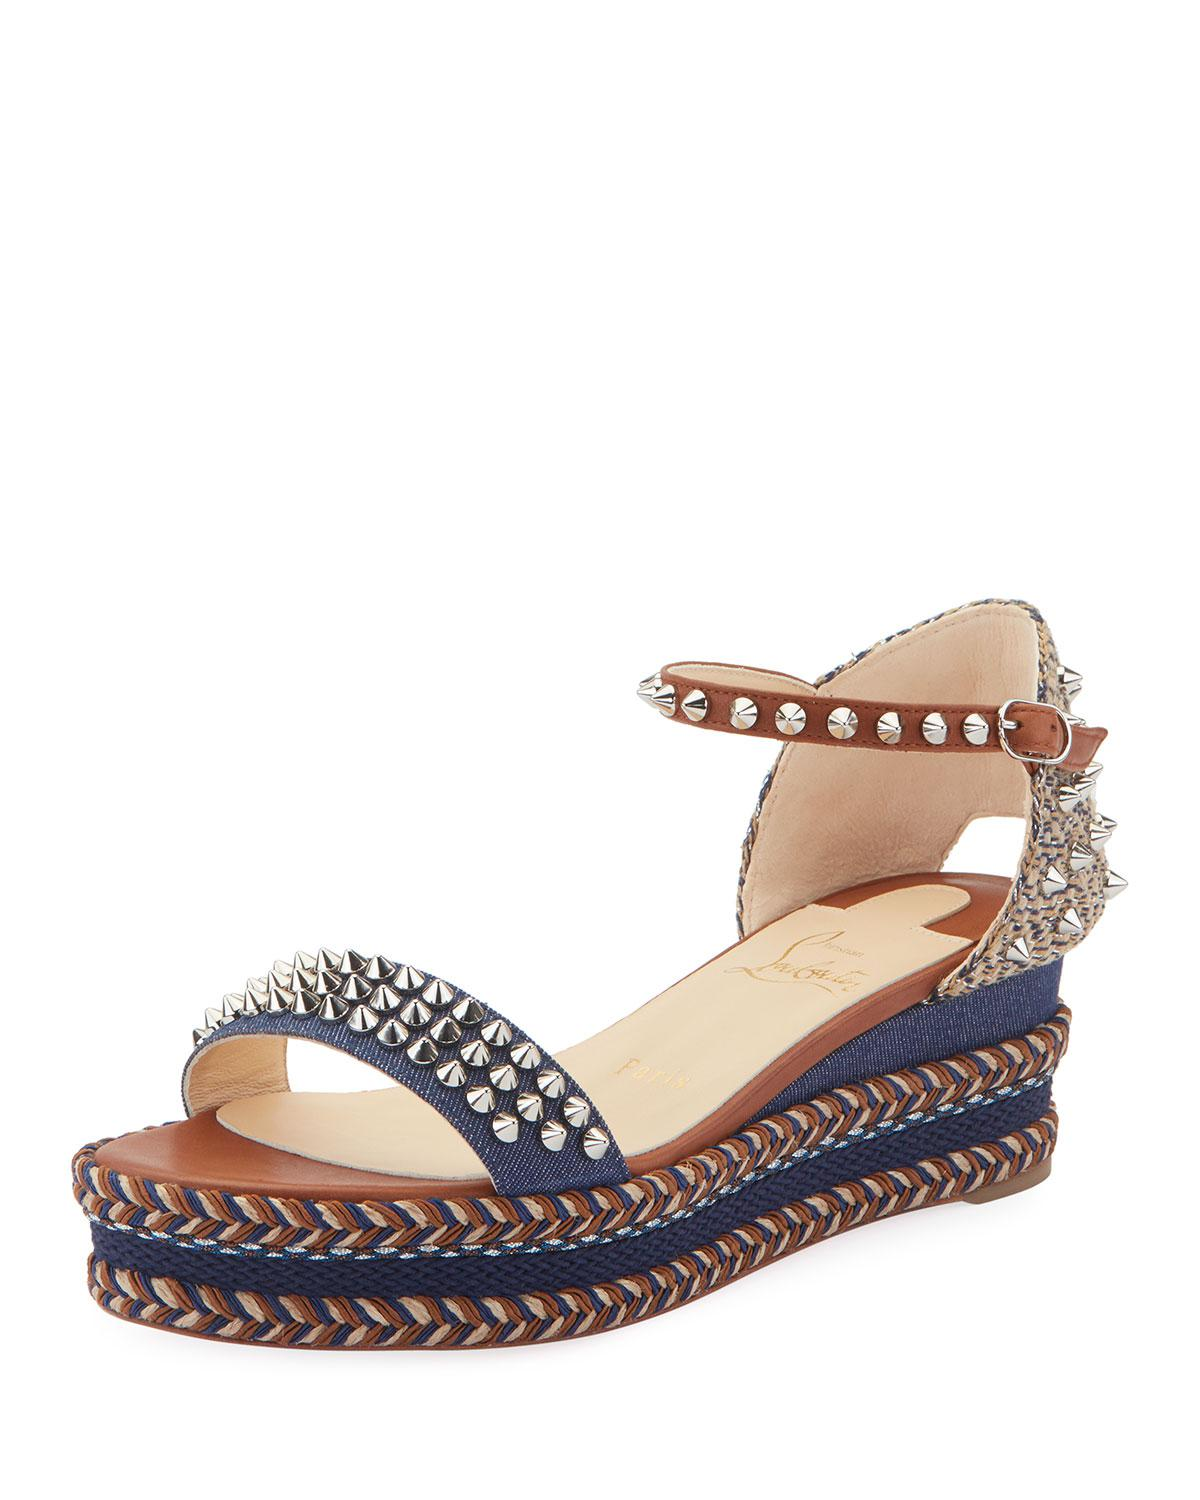 b3eaaf12c08b Christian Louboutin. Women s Blue Madmonica 60mm Spiked Denim Wedge Red  Sole Sandals